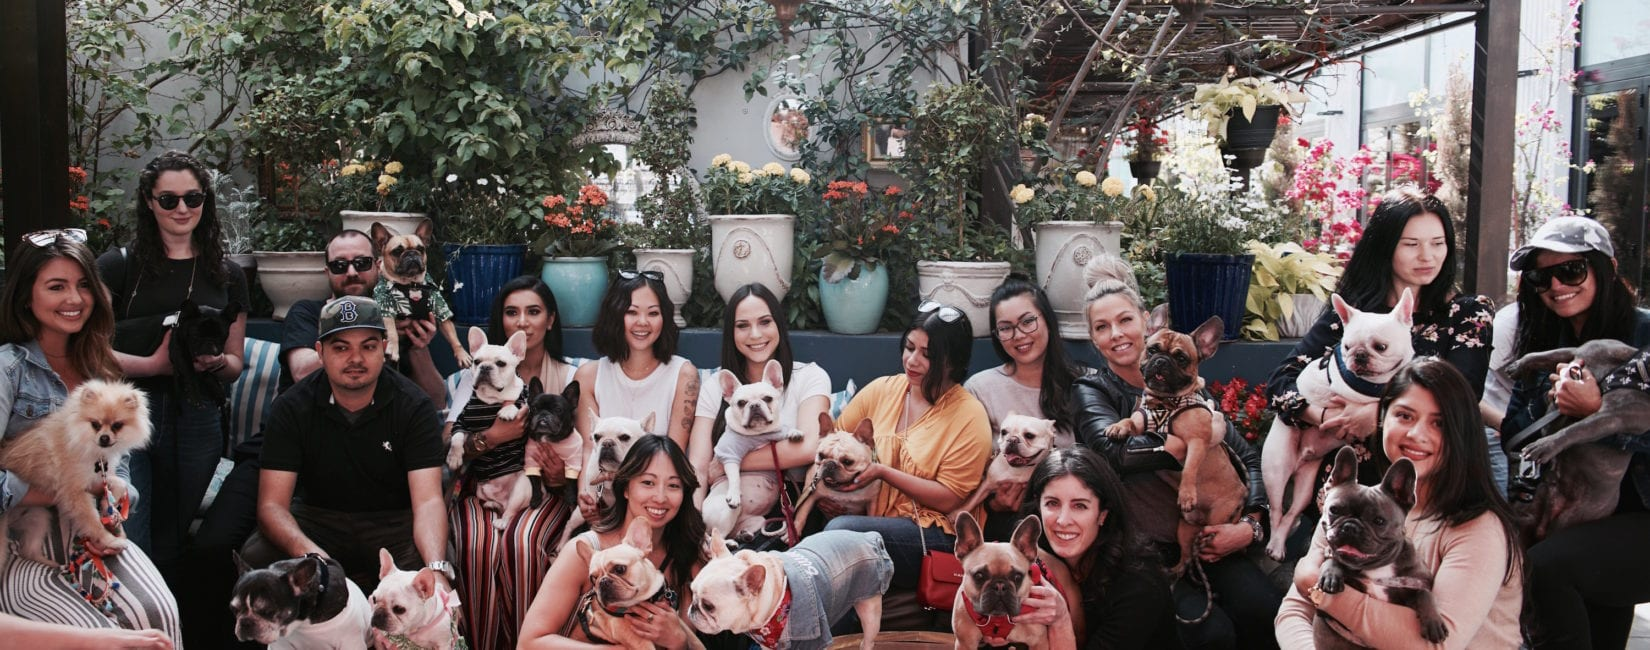 Summer Soirée @ SOFITEL w/ WTFrenchie x Brentwood Barks 4/29/18